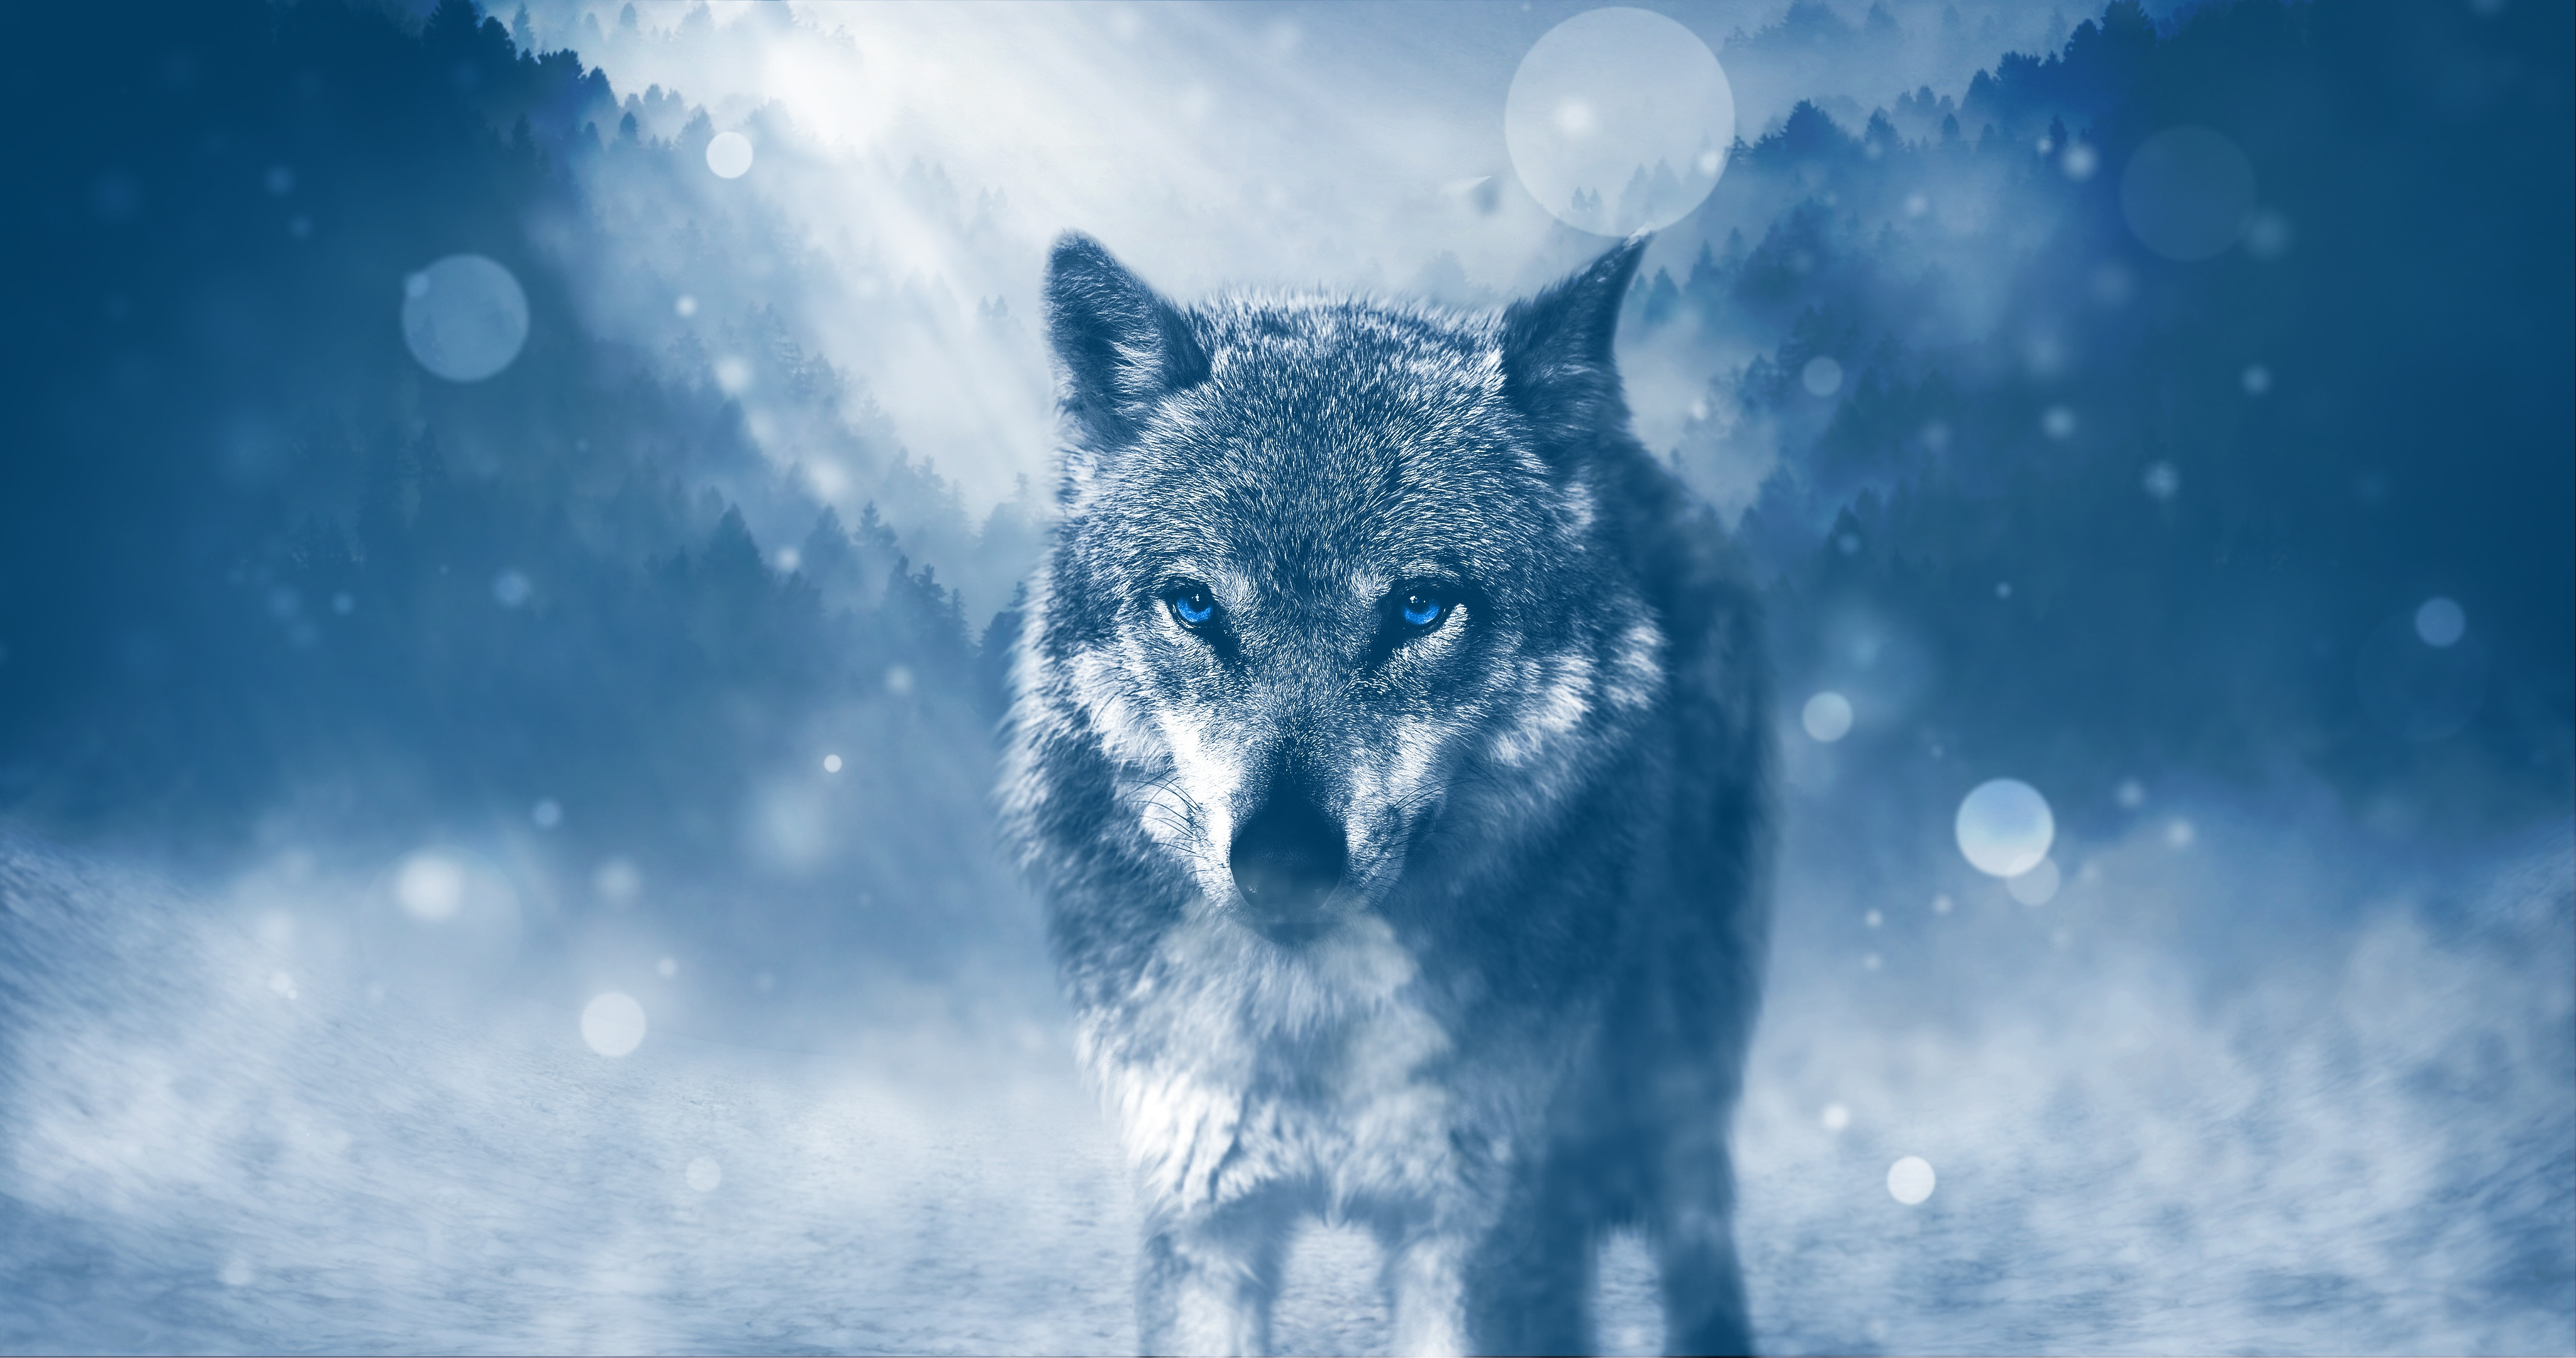 154124 Screensavers and Wallpapers Photoshop for phone. Download Animals, Glare, Predator, Wolf, Sight, Opinion, Photoshop pictures for free